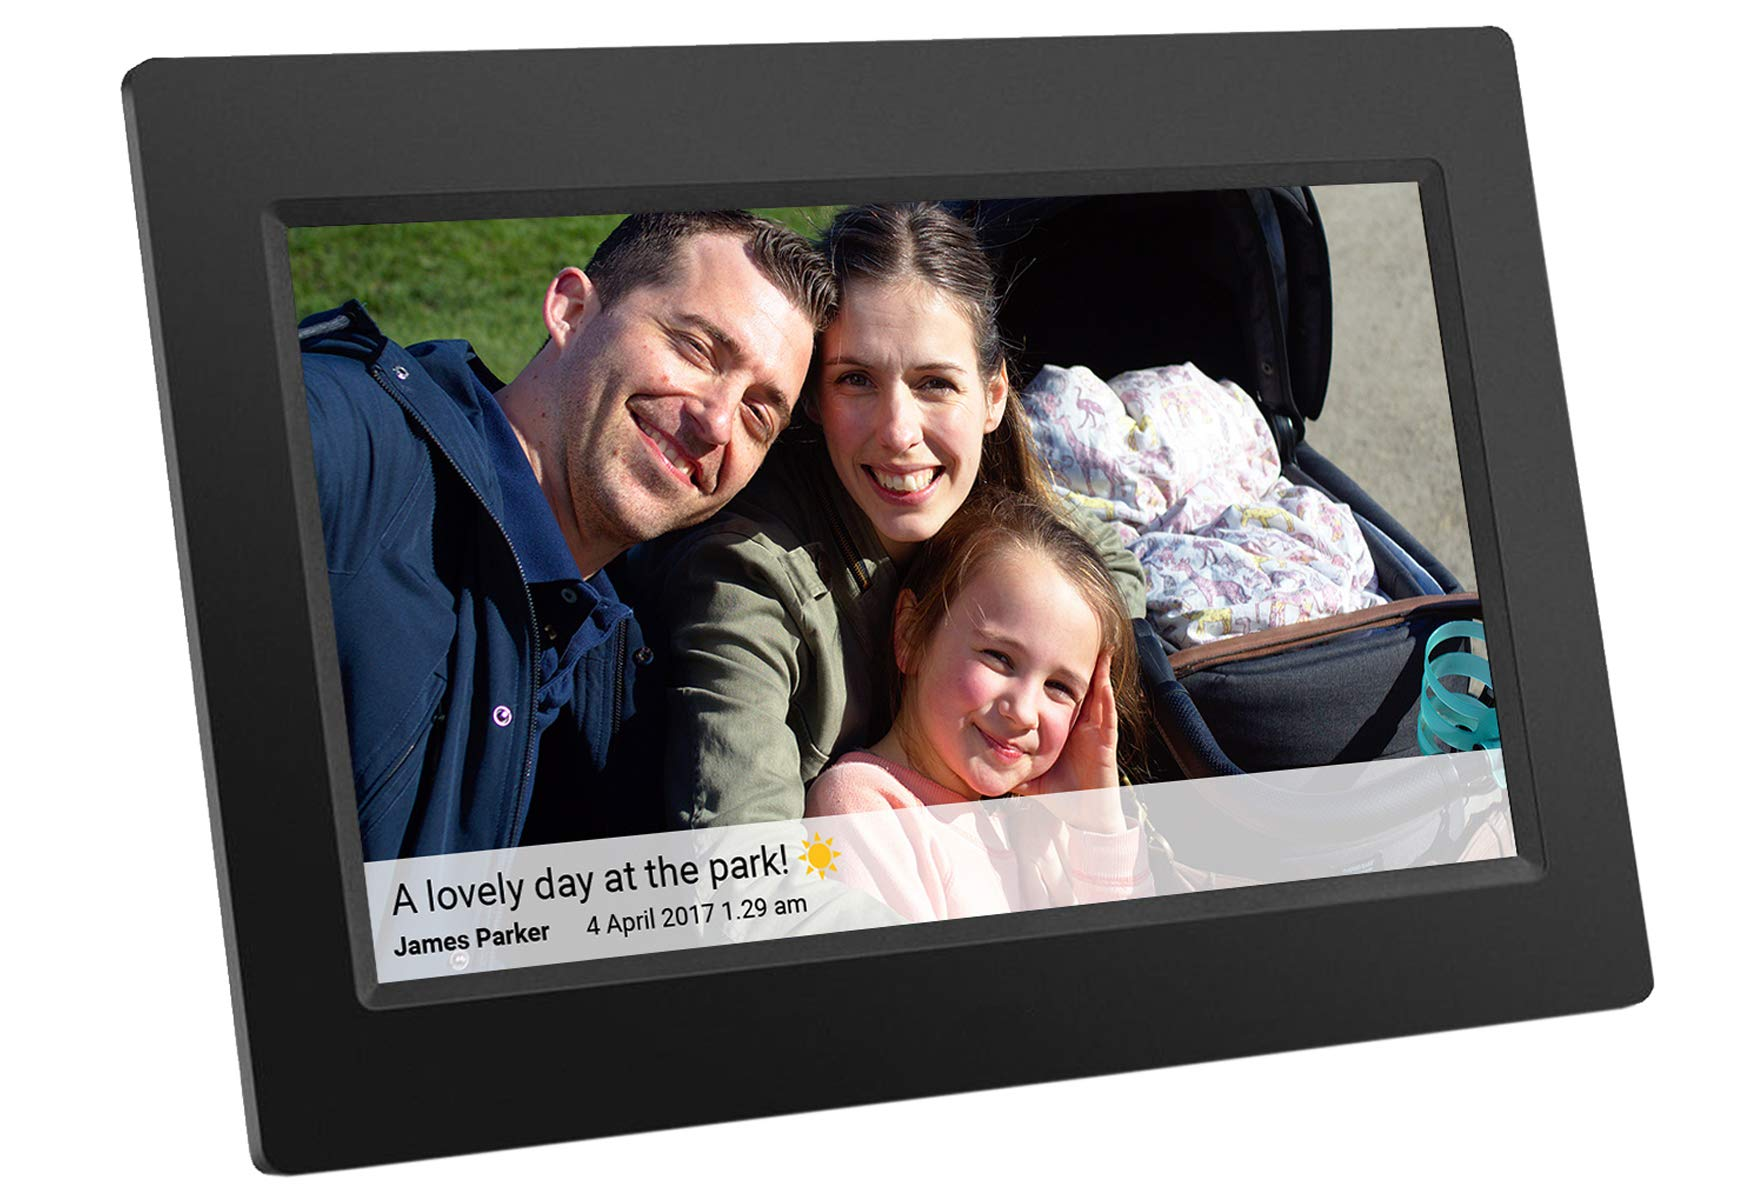 Feelcare 10 Inch Smart WiFi Digital Photo Frame with Touch Screen, IPS LCD Panel, Built in 8GB Memory, Wall-Mountable, Portrait&Landscape, Instantly Sharing Moments(Black) by Feelcare